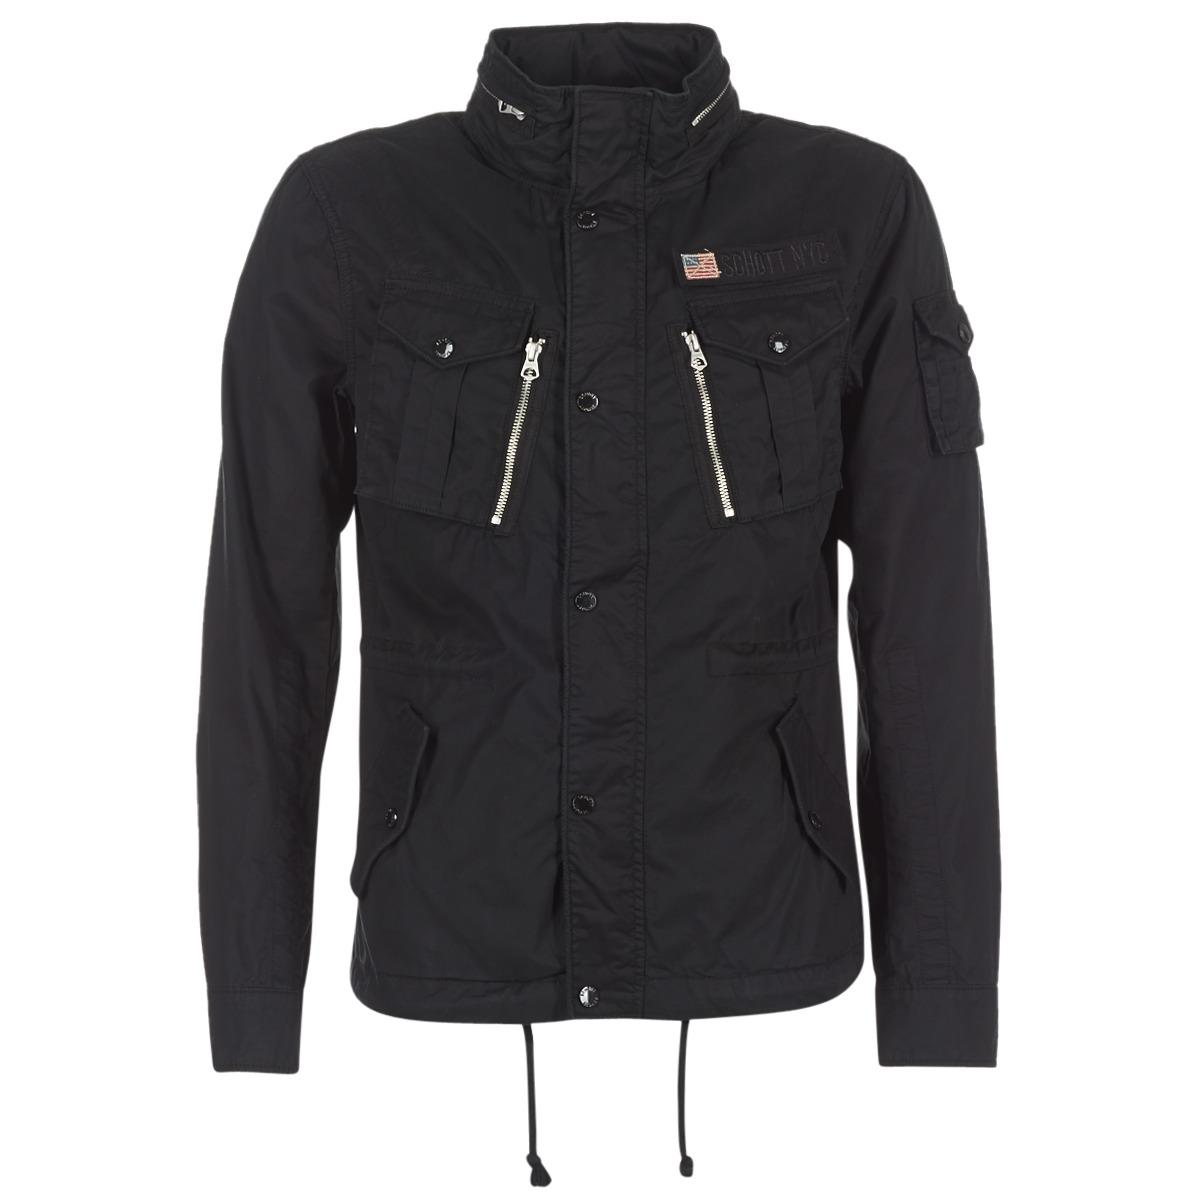 97957436c ... Squad Jacket for Men - Lyst. View fullscreen